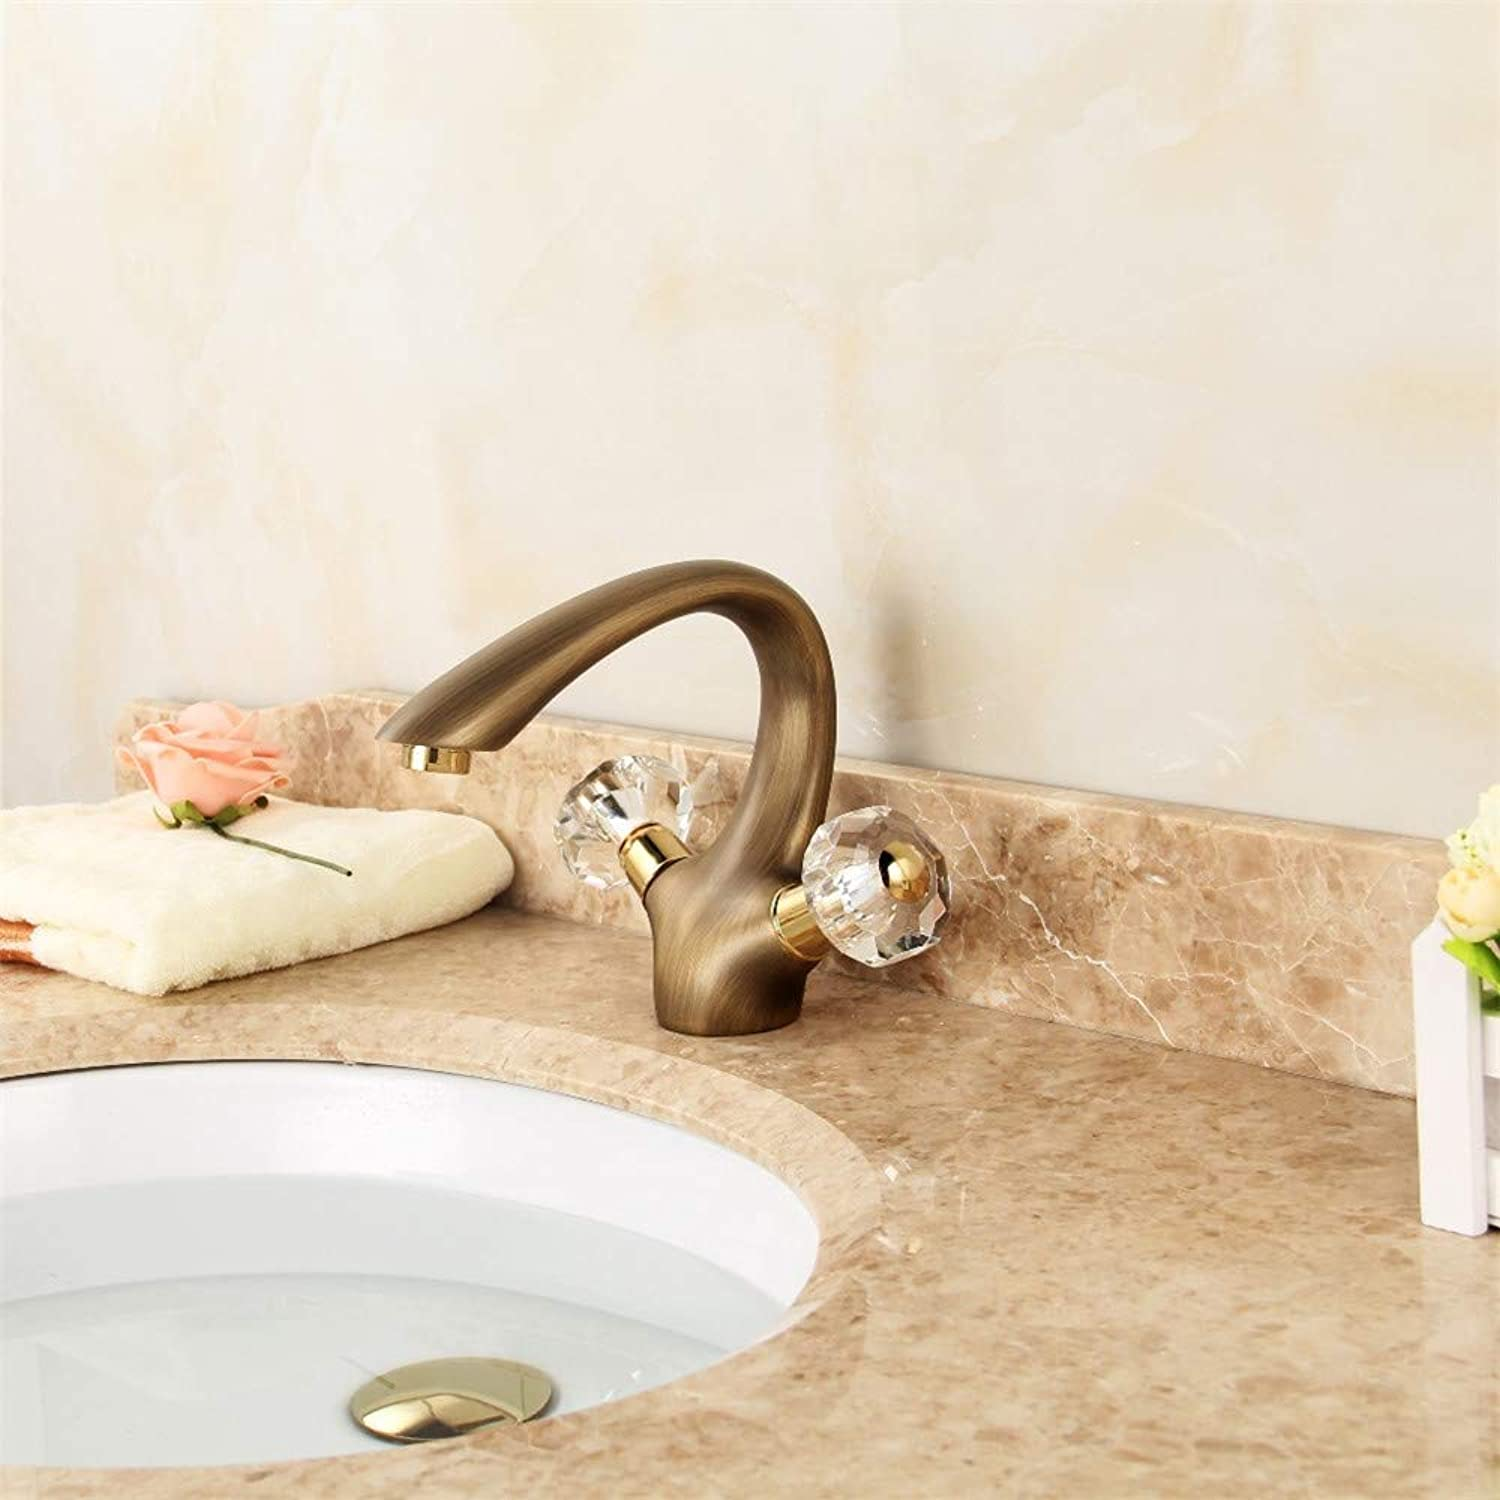 XPYFaucet Faucet Tap Taps European style brushed copper basin single hole double handle hot and cold water retro